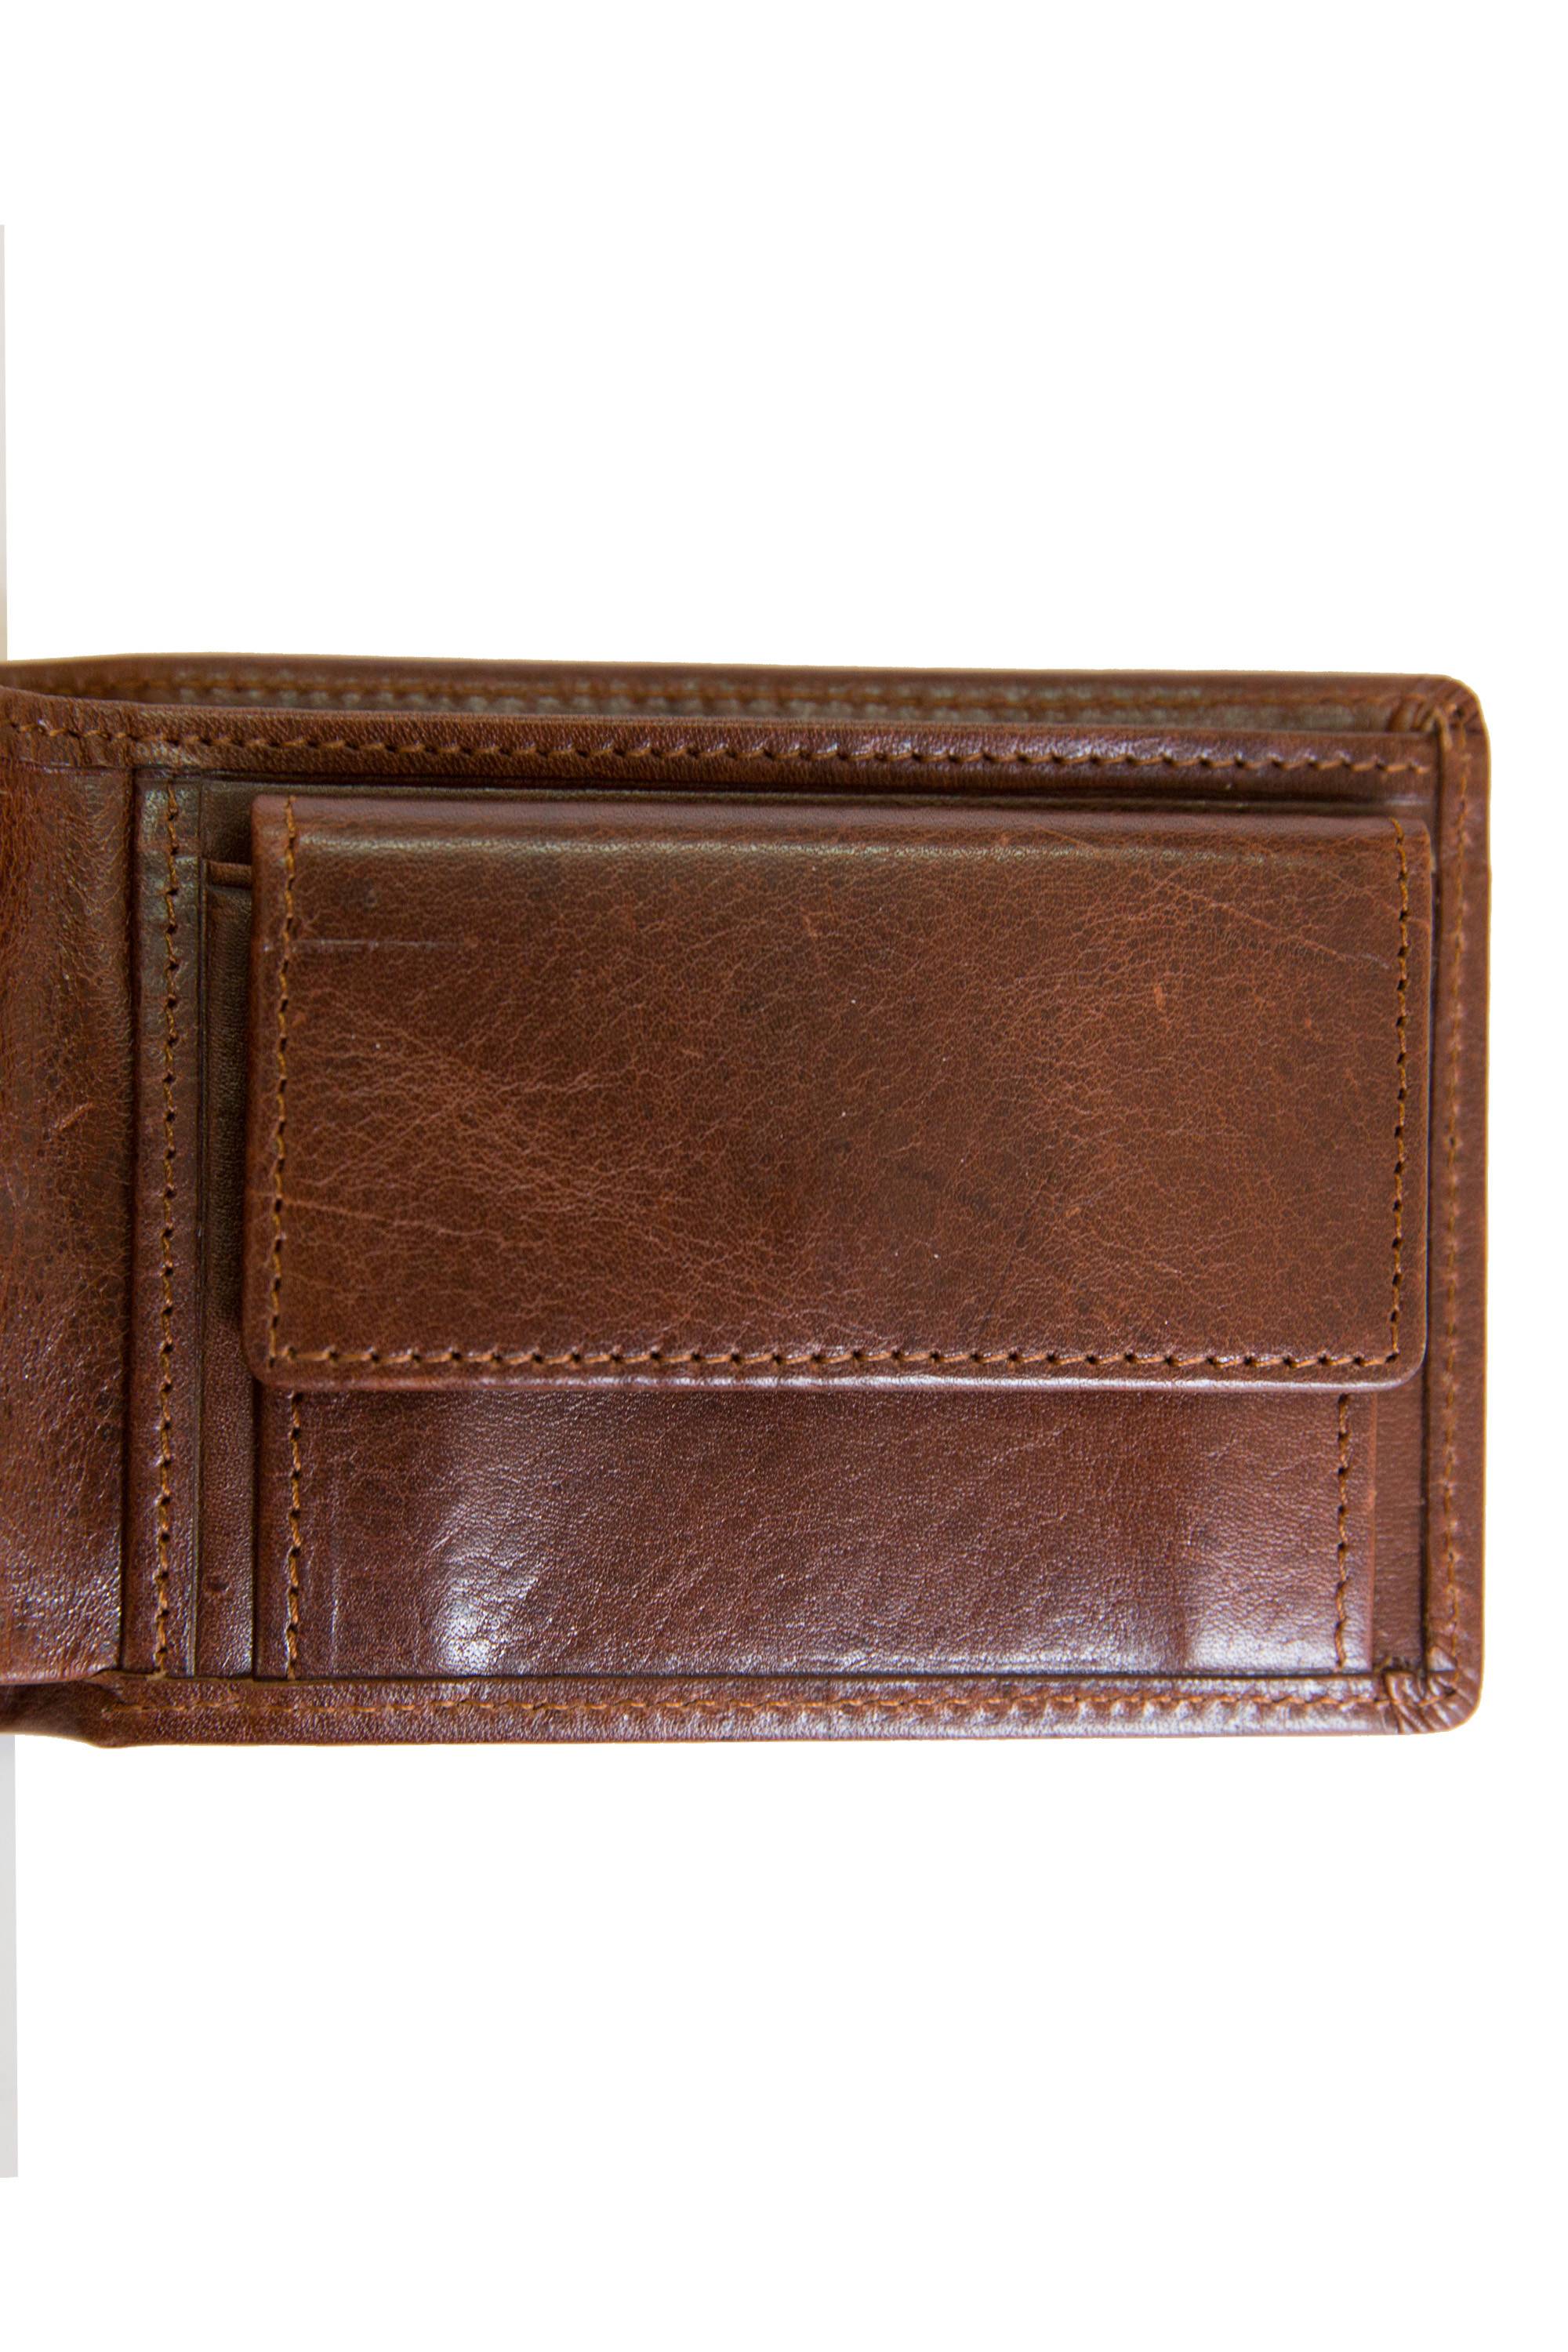 Capital Leather Wallet